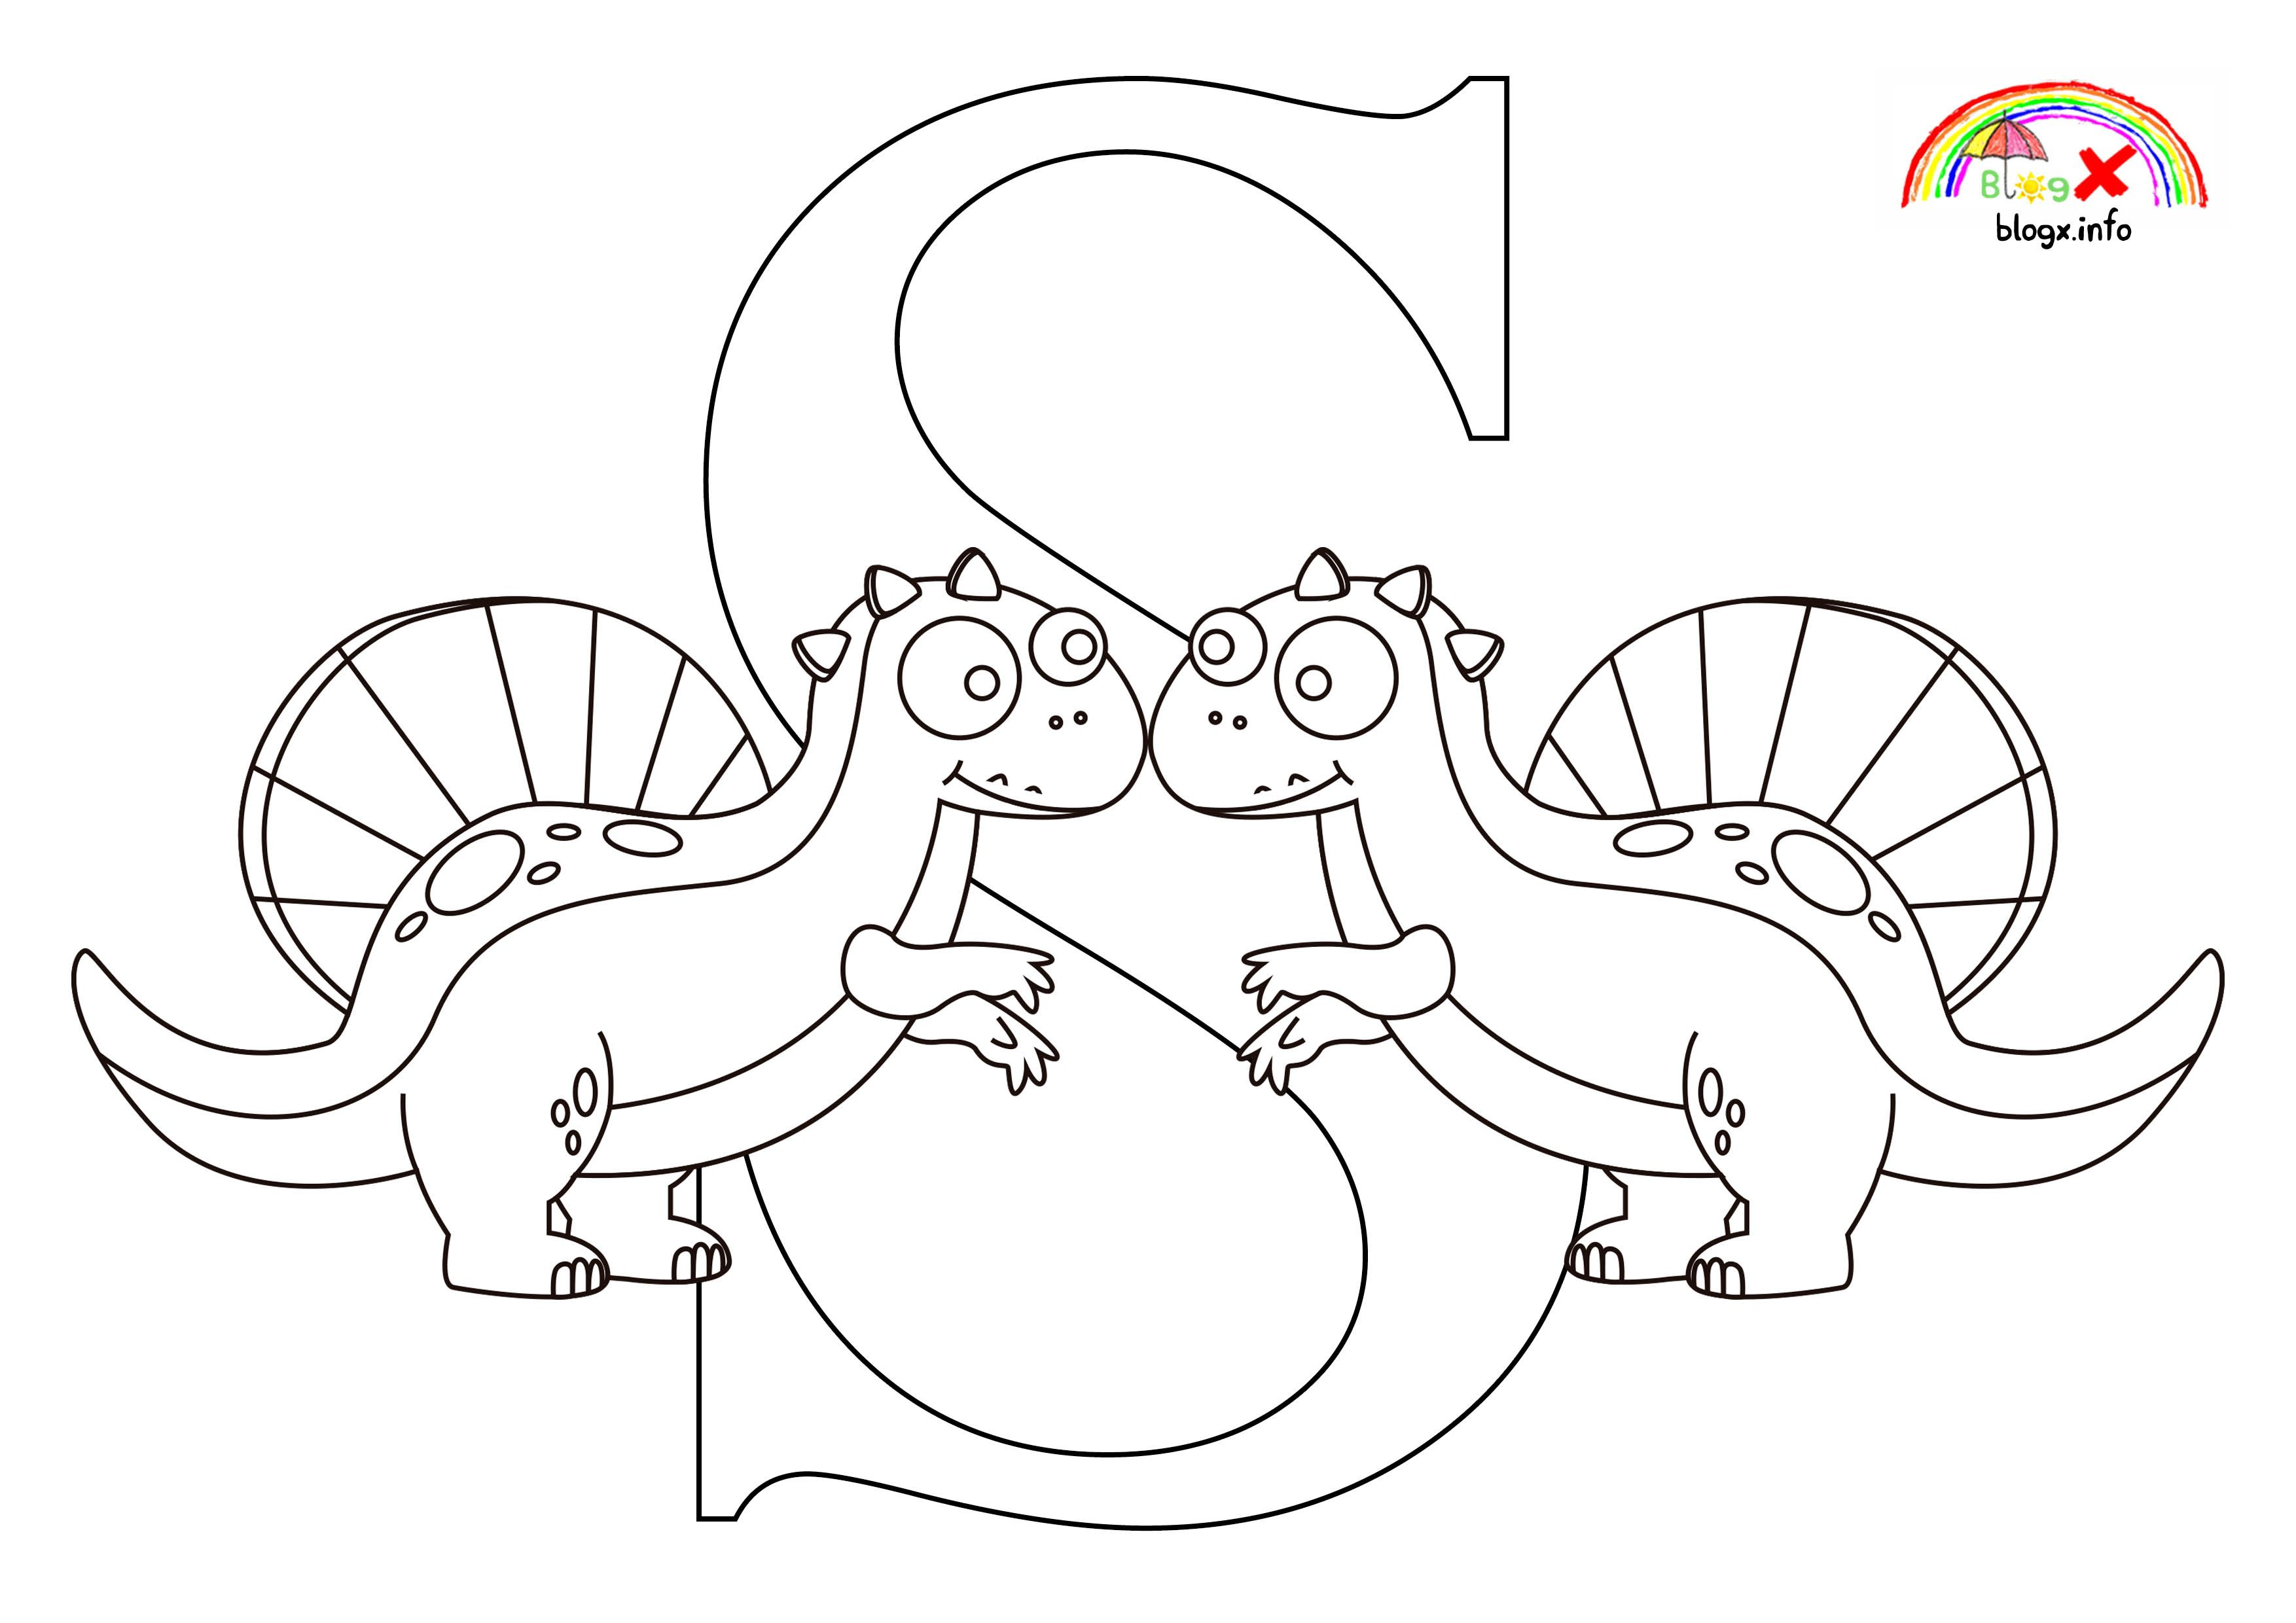 Sphinosaurus Dinosaurs Coloring Page Blogx Info Dinosaur Coloring Pages Dinosaur Coloring Coloring Pages